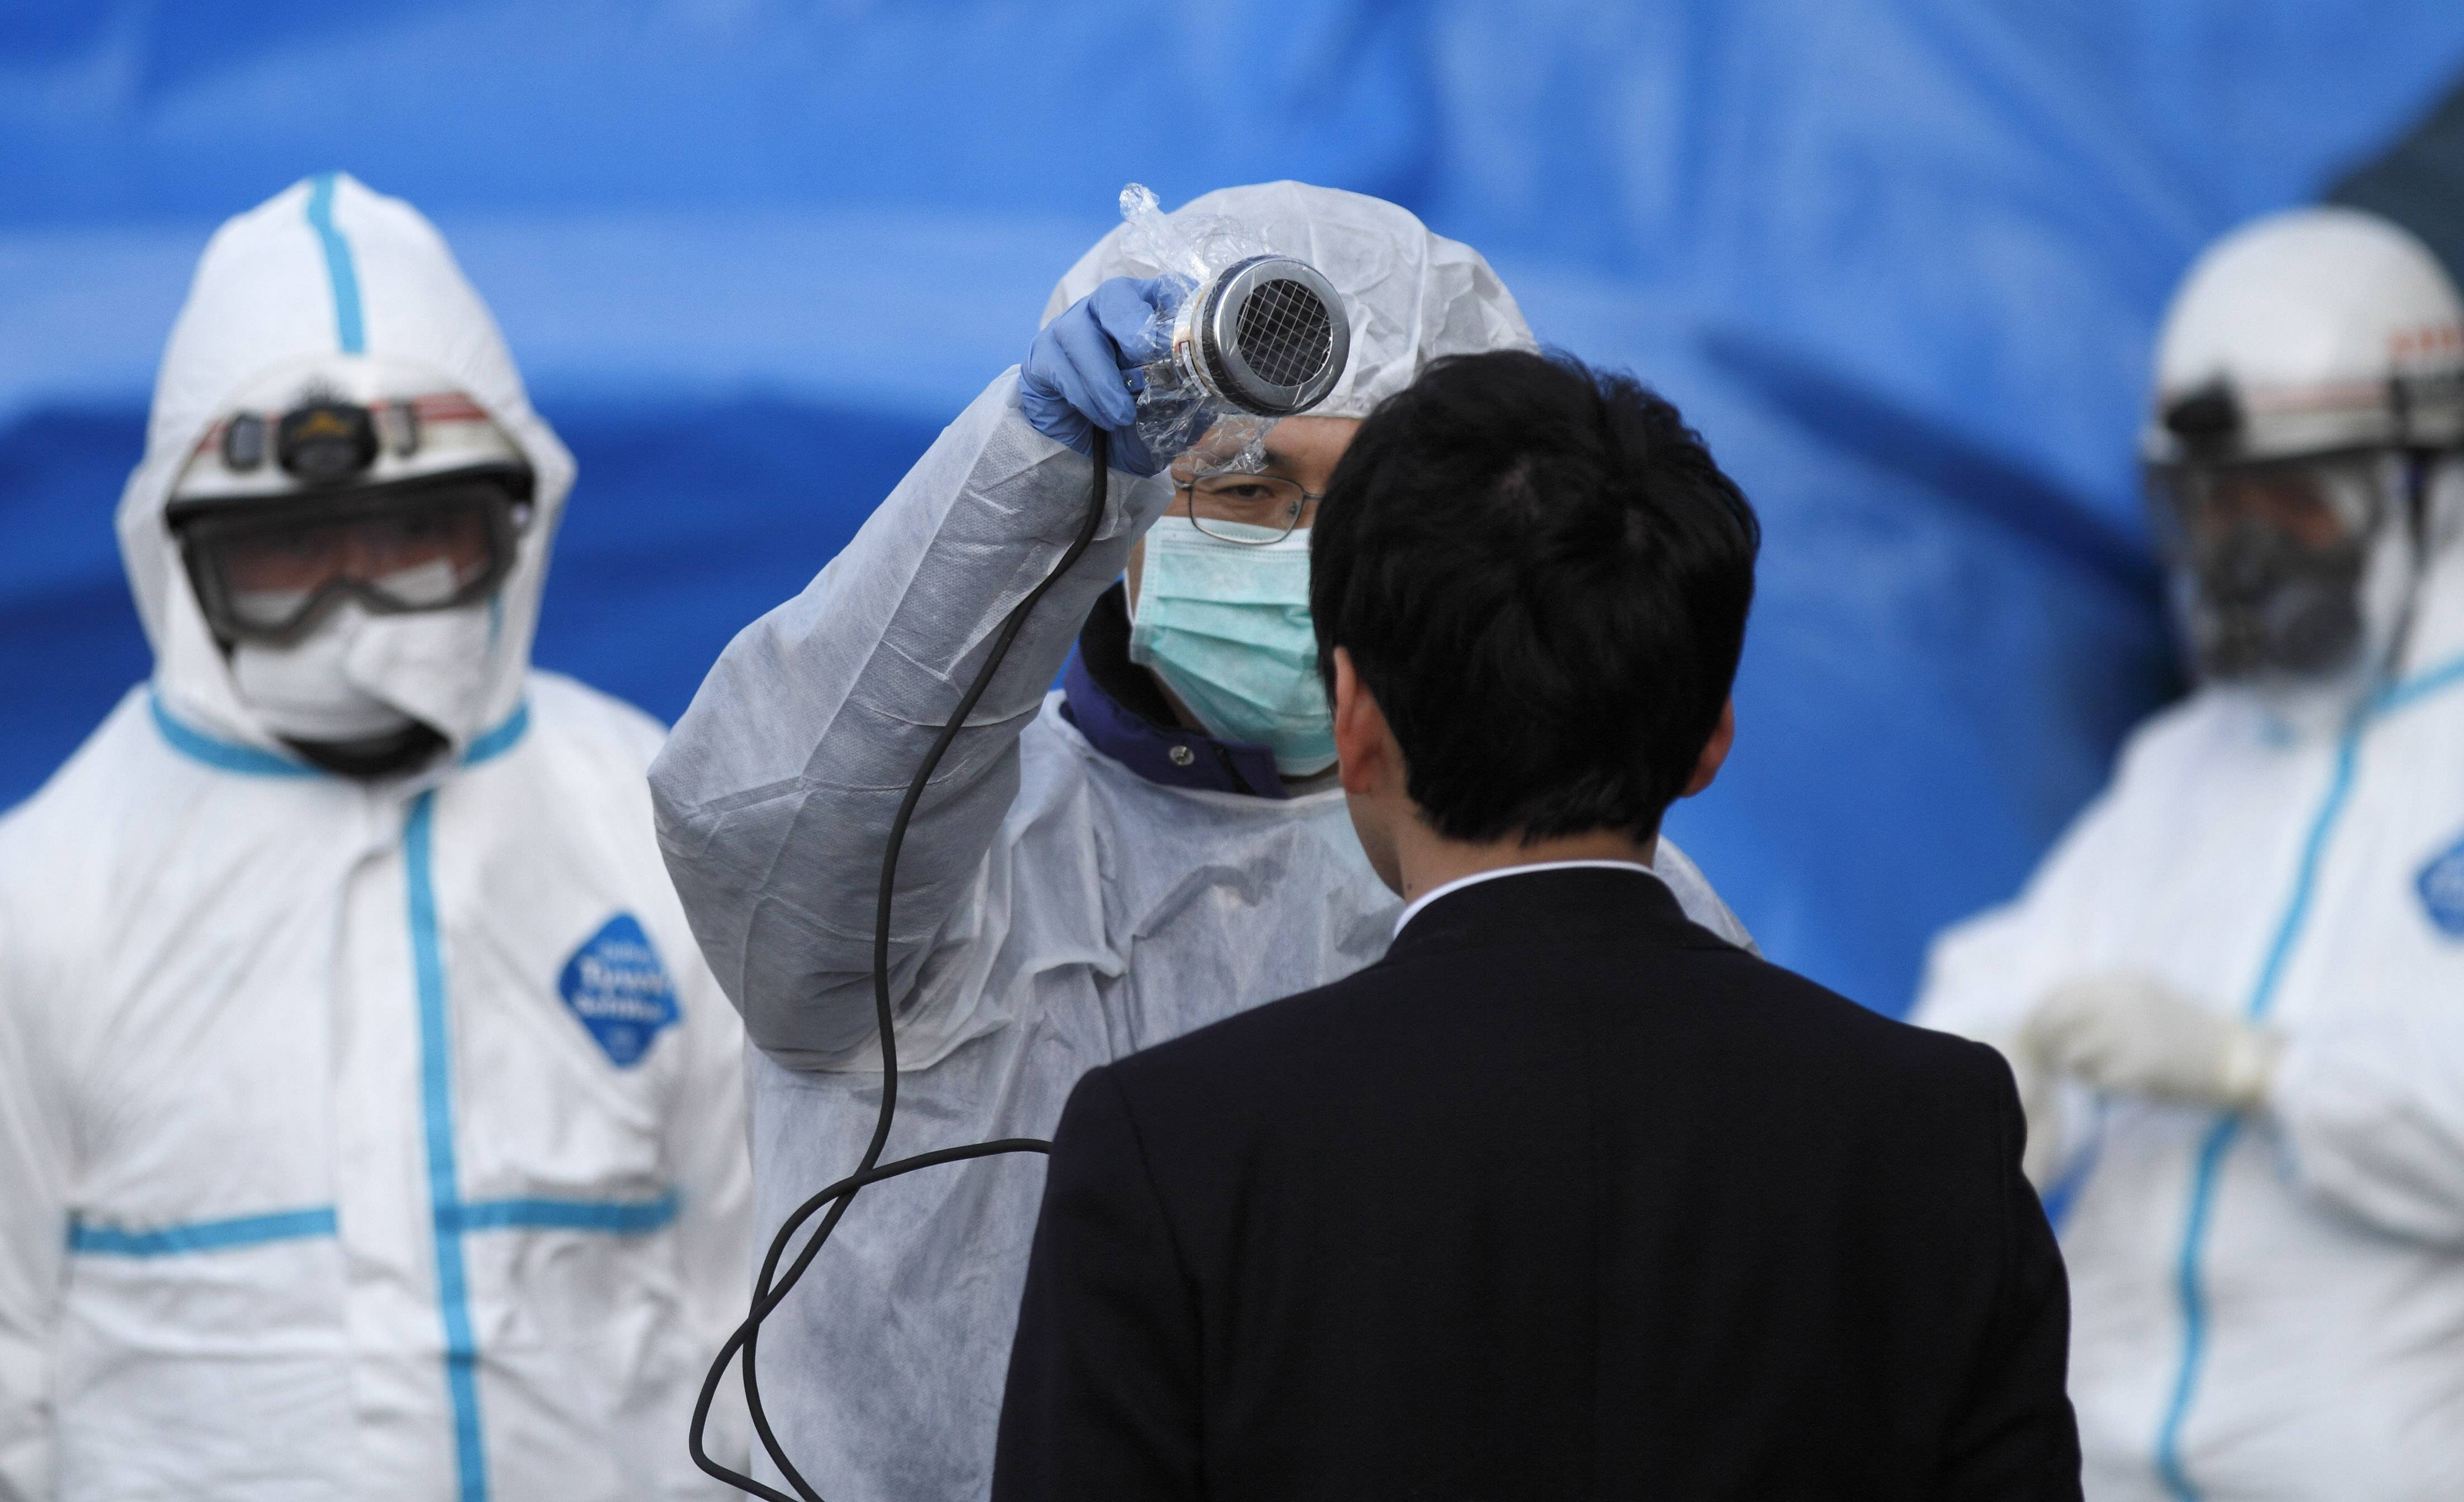 An official scans a man for radiation at an emergency center Sunday, March 13, 2011, in Koriyama, northeastern Japan, two days after a giant quake and tsunami struck the country's northeastern coast.